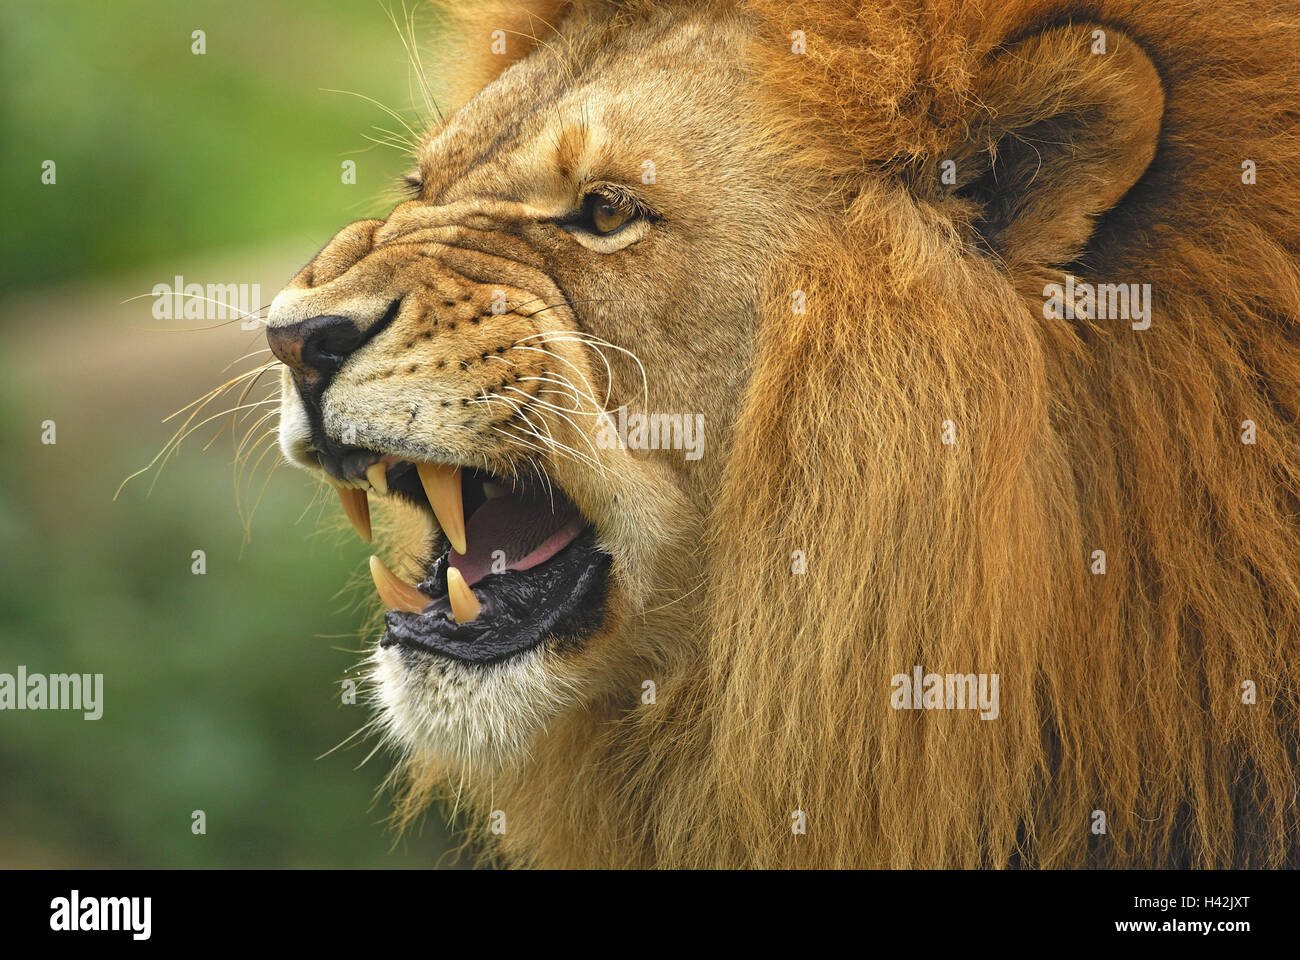 Lion, Panthera leo, furious, threatening, side portrait ...